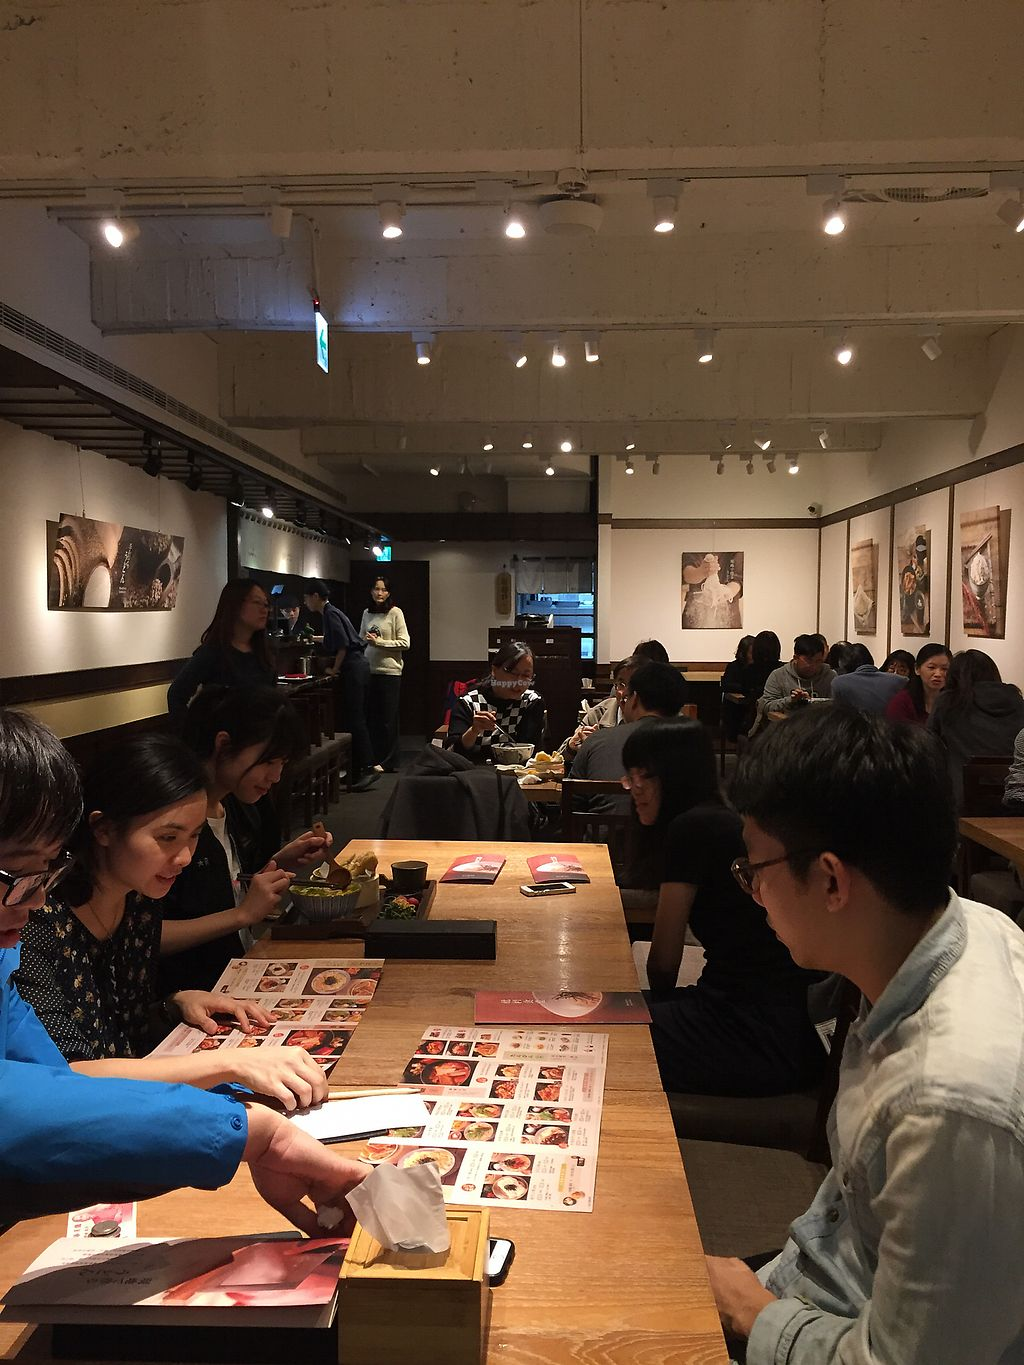 """Photo of Hoshina Teishoku - Zhongshan District  by <a href=""""/members/profile/aliverv88"""">aliverv88</a> <br/>Lovely atmosphere  <br/> December 28, 2017  - <a href='/contact/abuse/image/96690/339926'>Report</a>"""